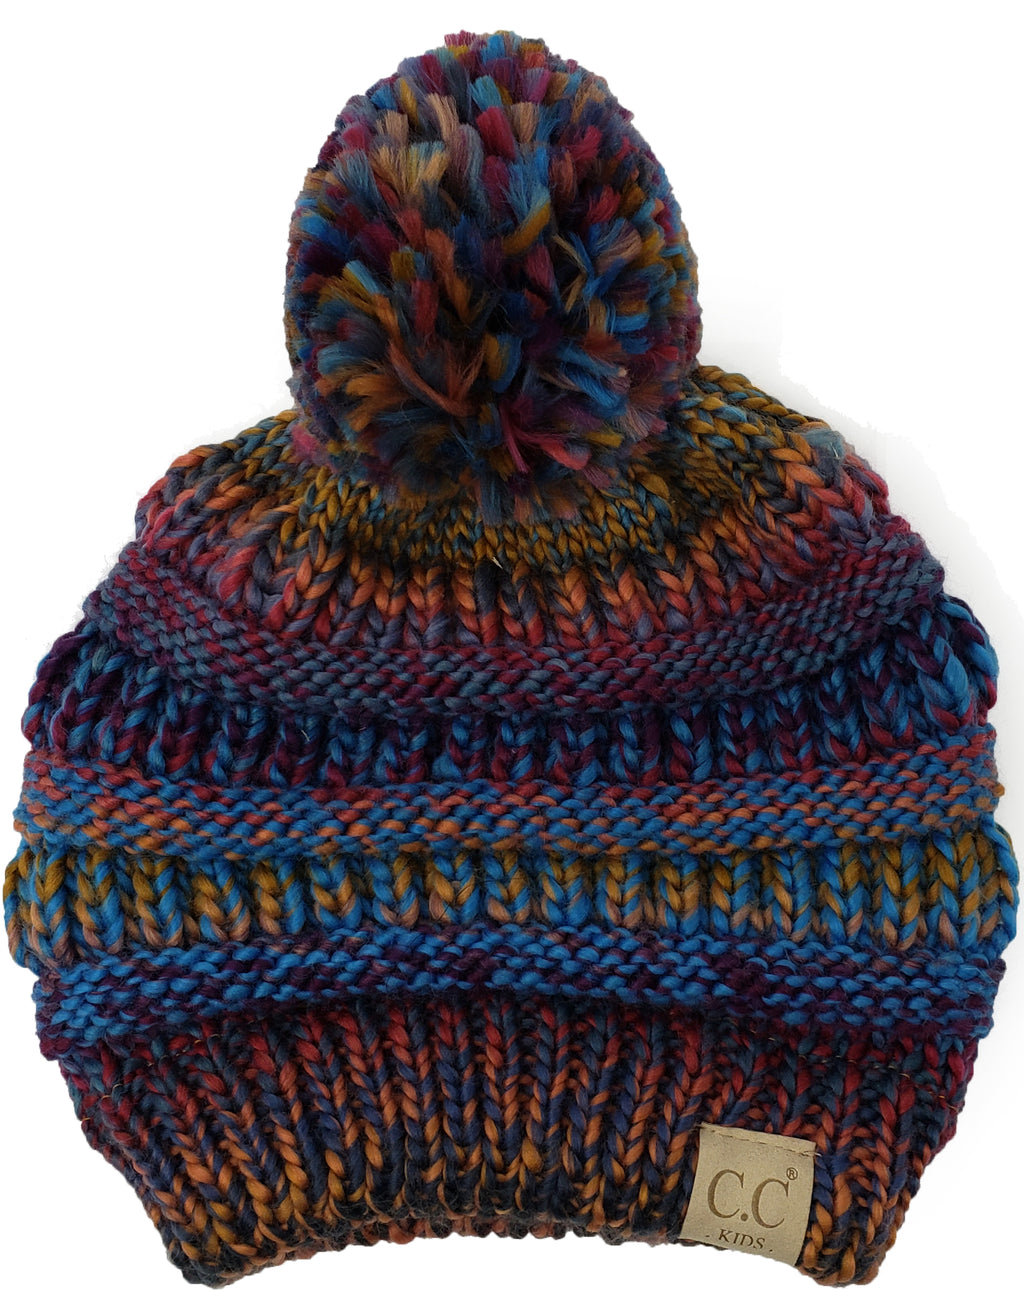 C.C. Kid's Classic Fit Cable Knit Beanie W/ Pom - Multi Mix